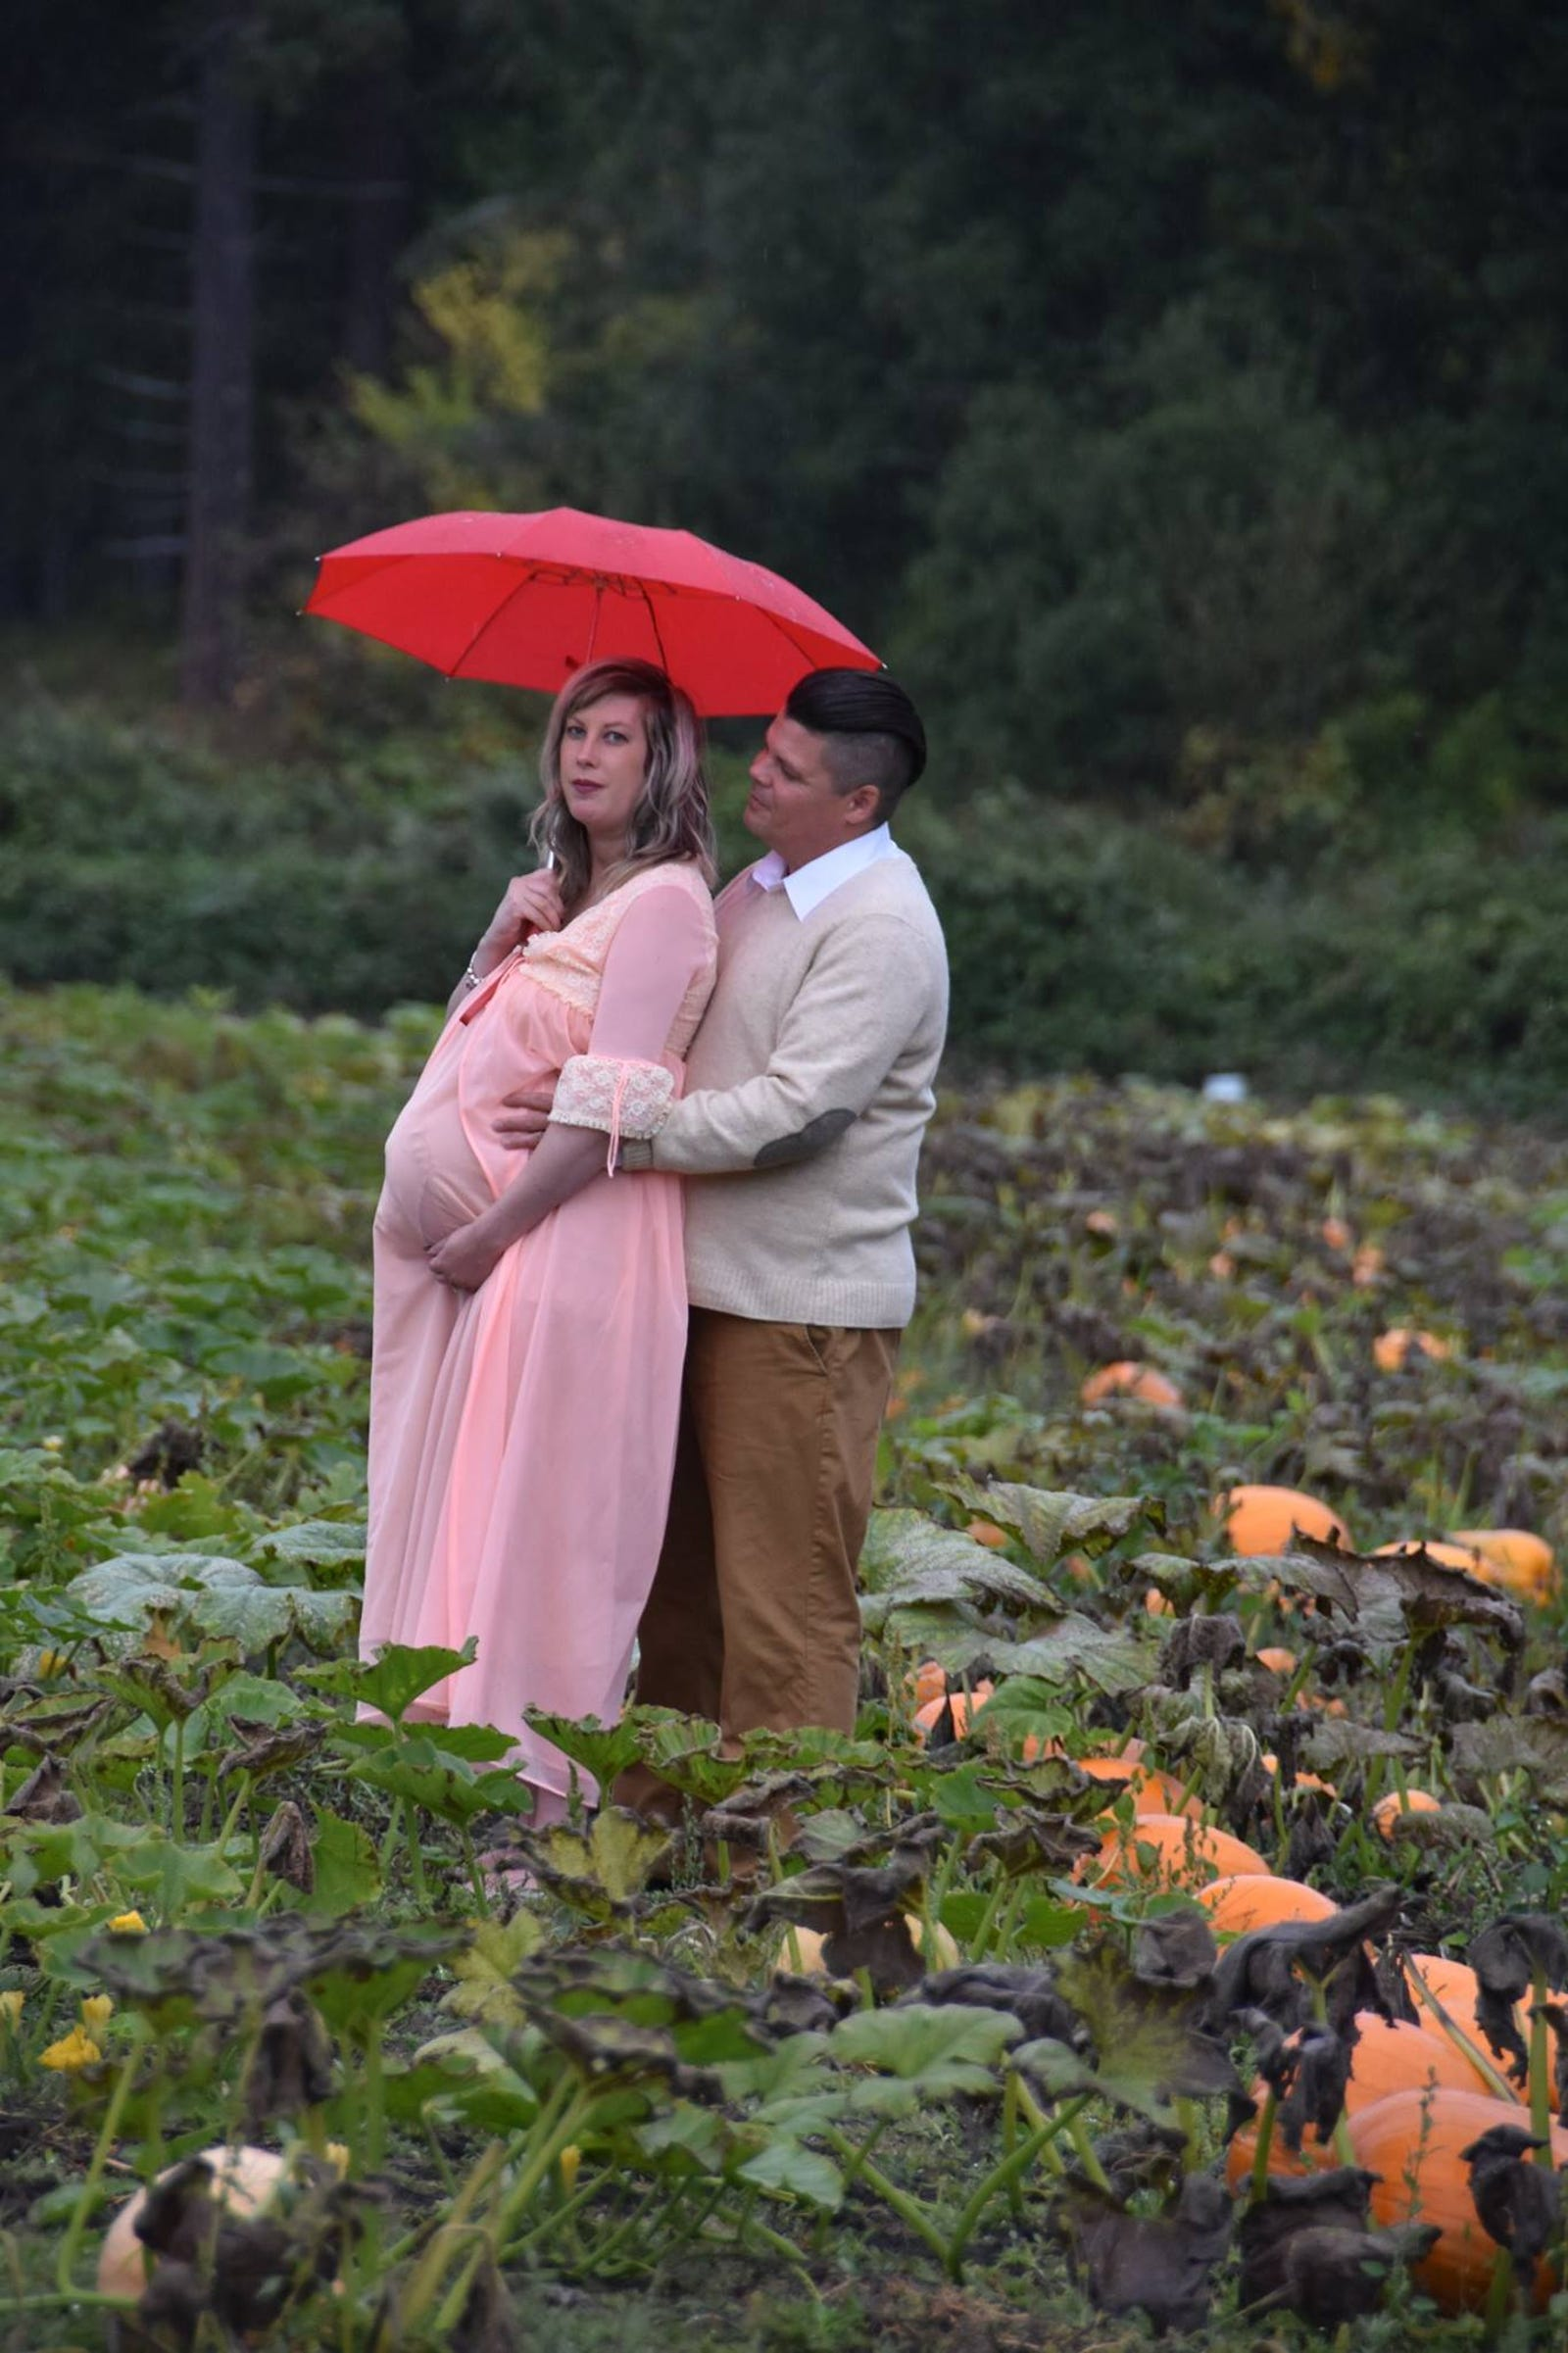 Todd and Nicole Cameron's maternity photos, reprinted with permission.